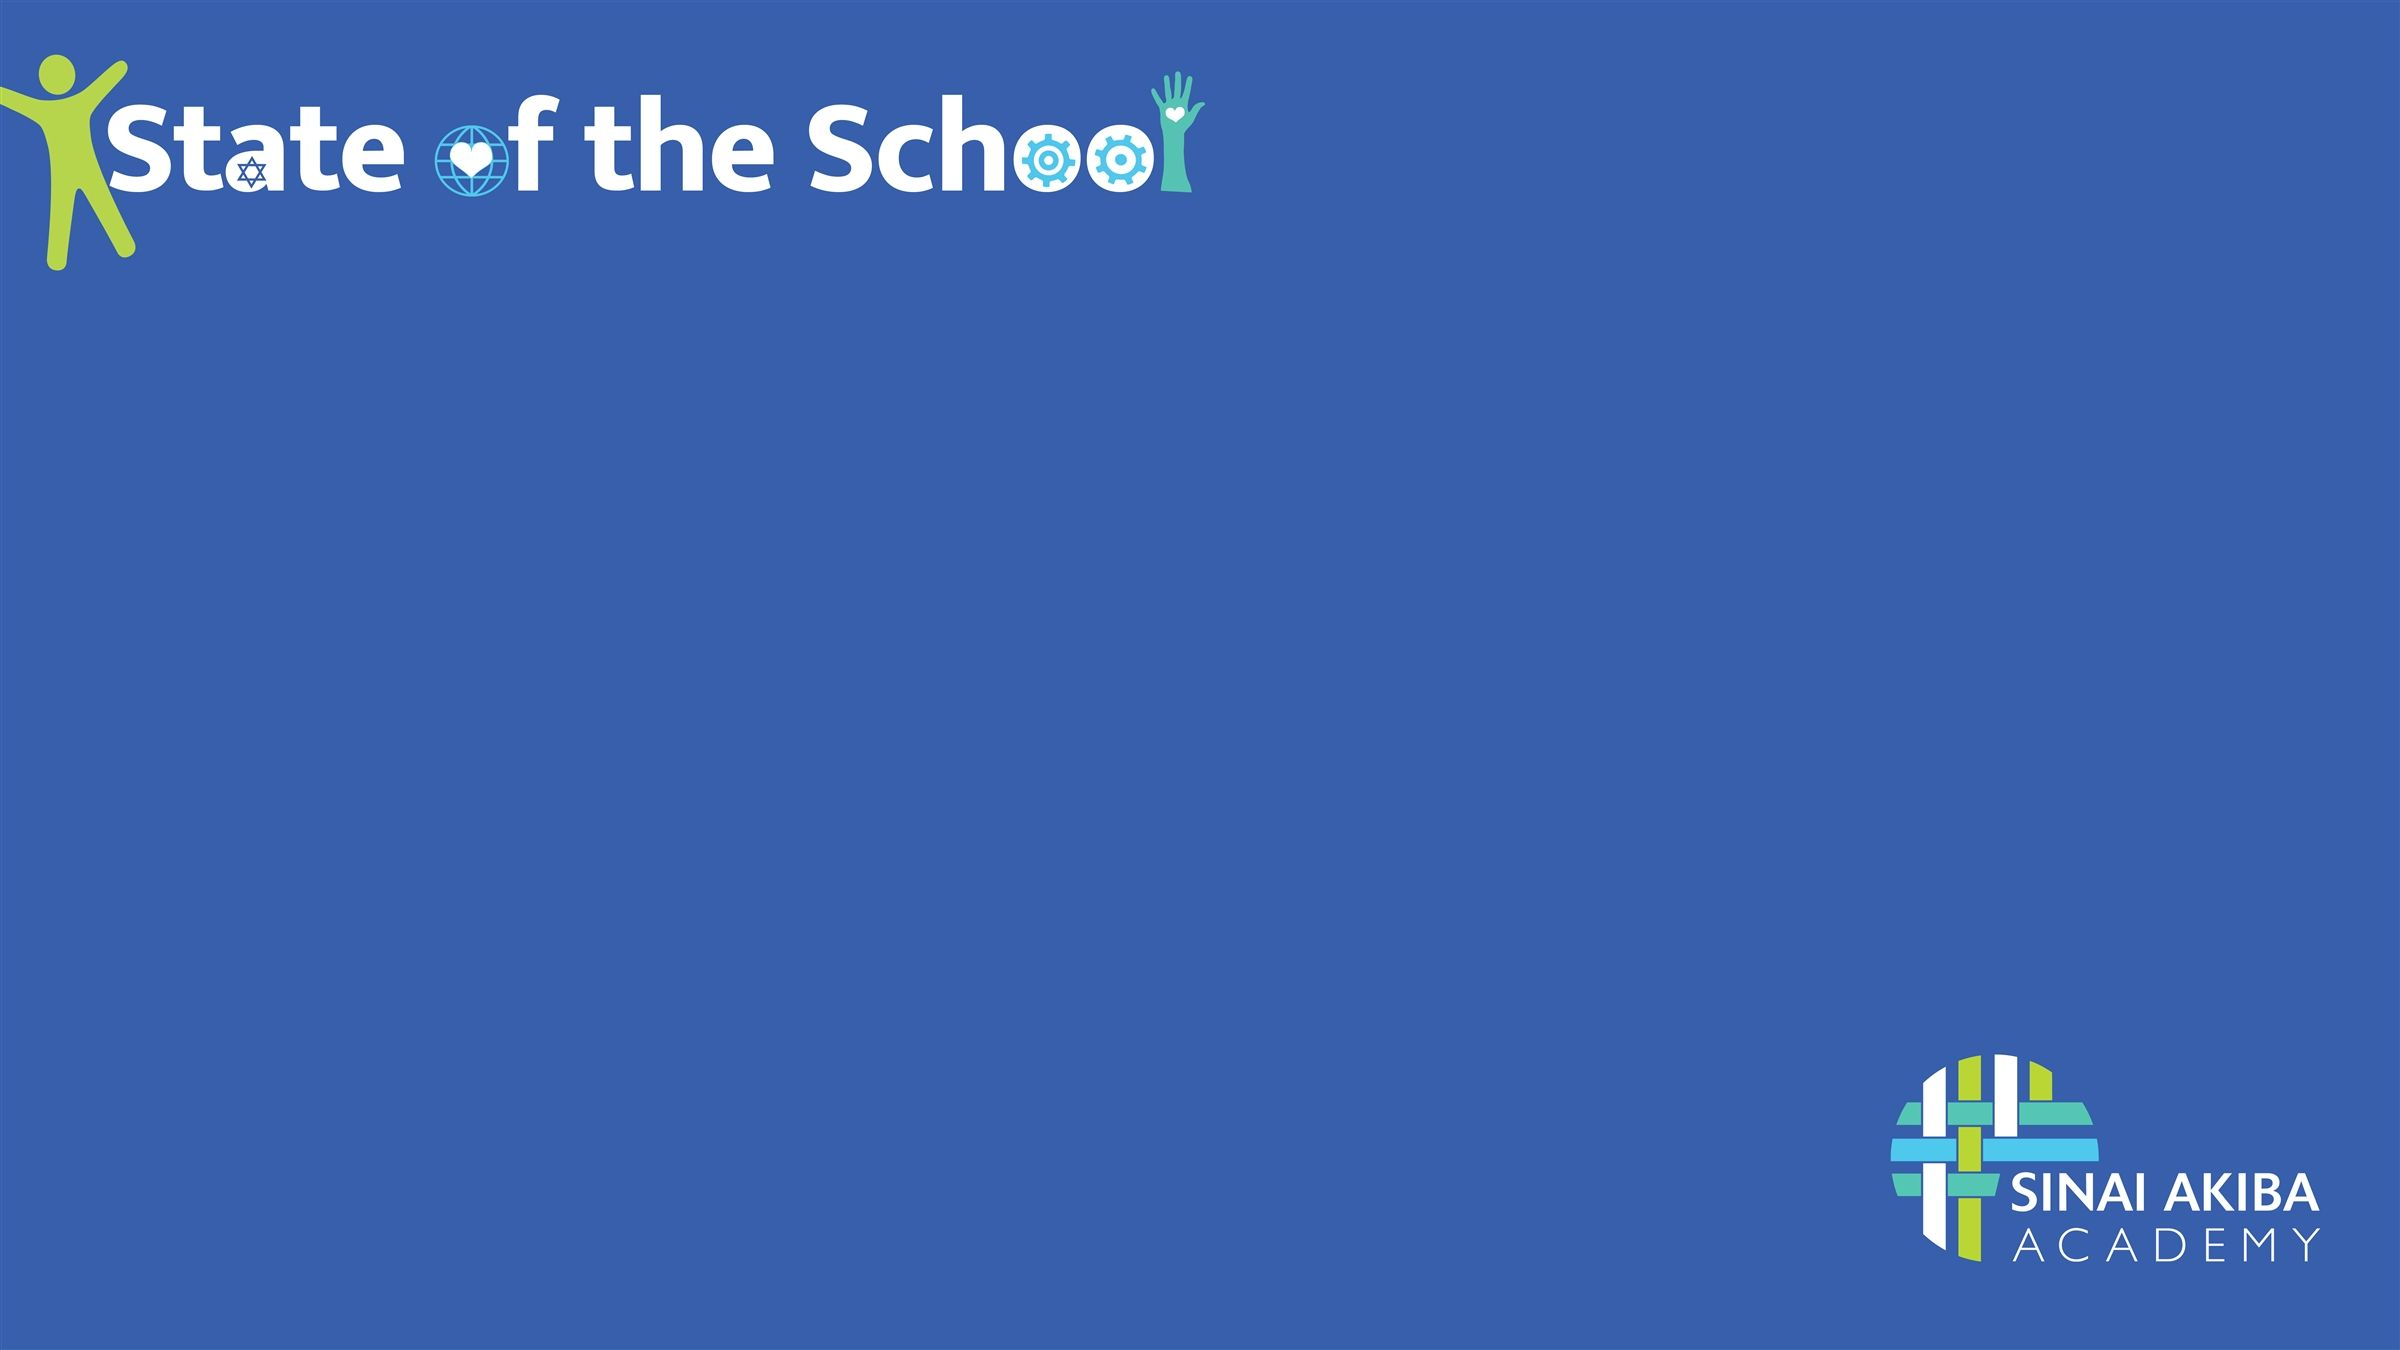 State of the School 3